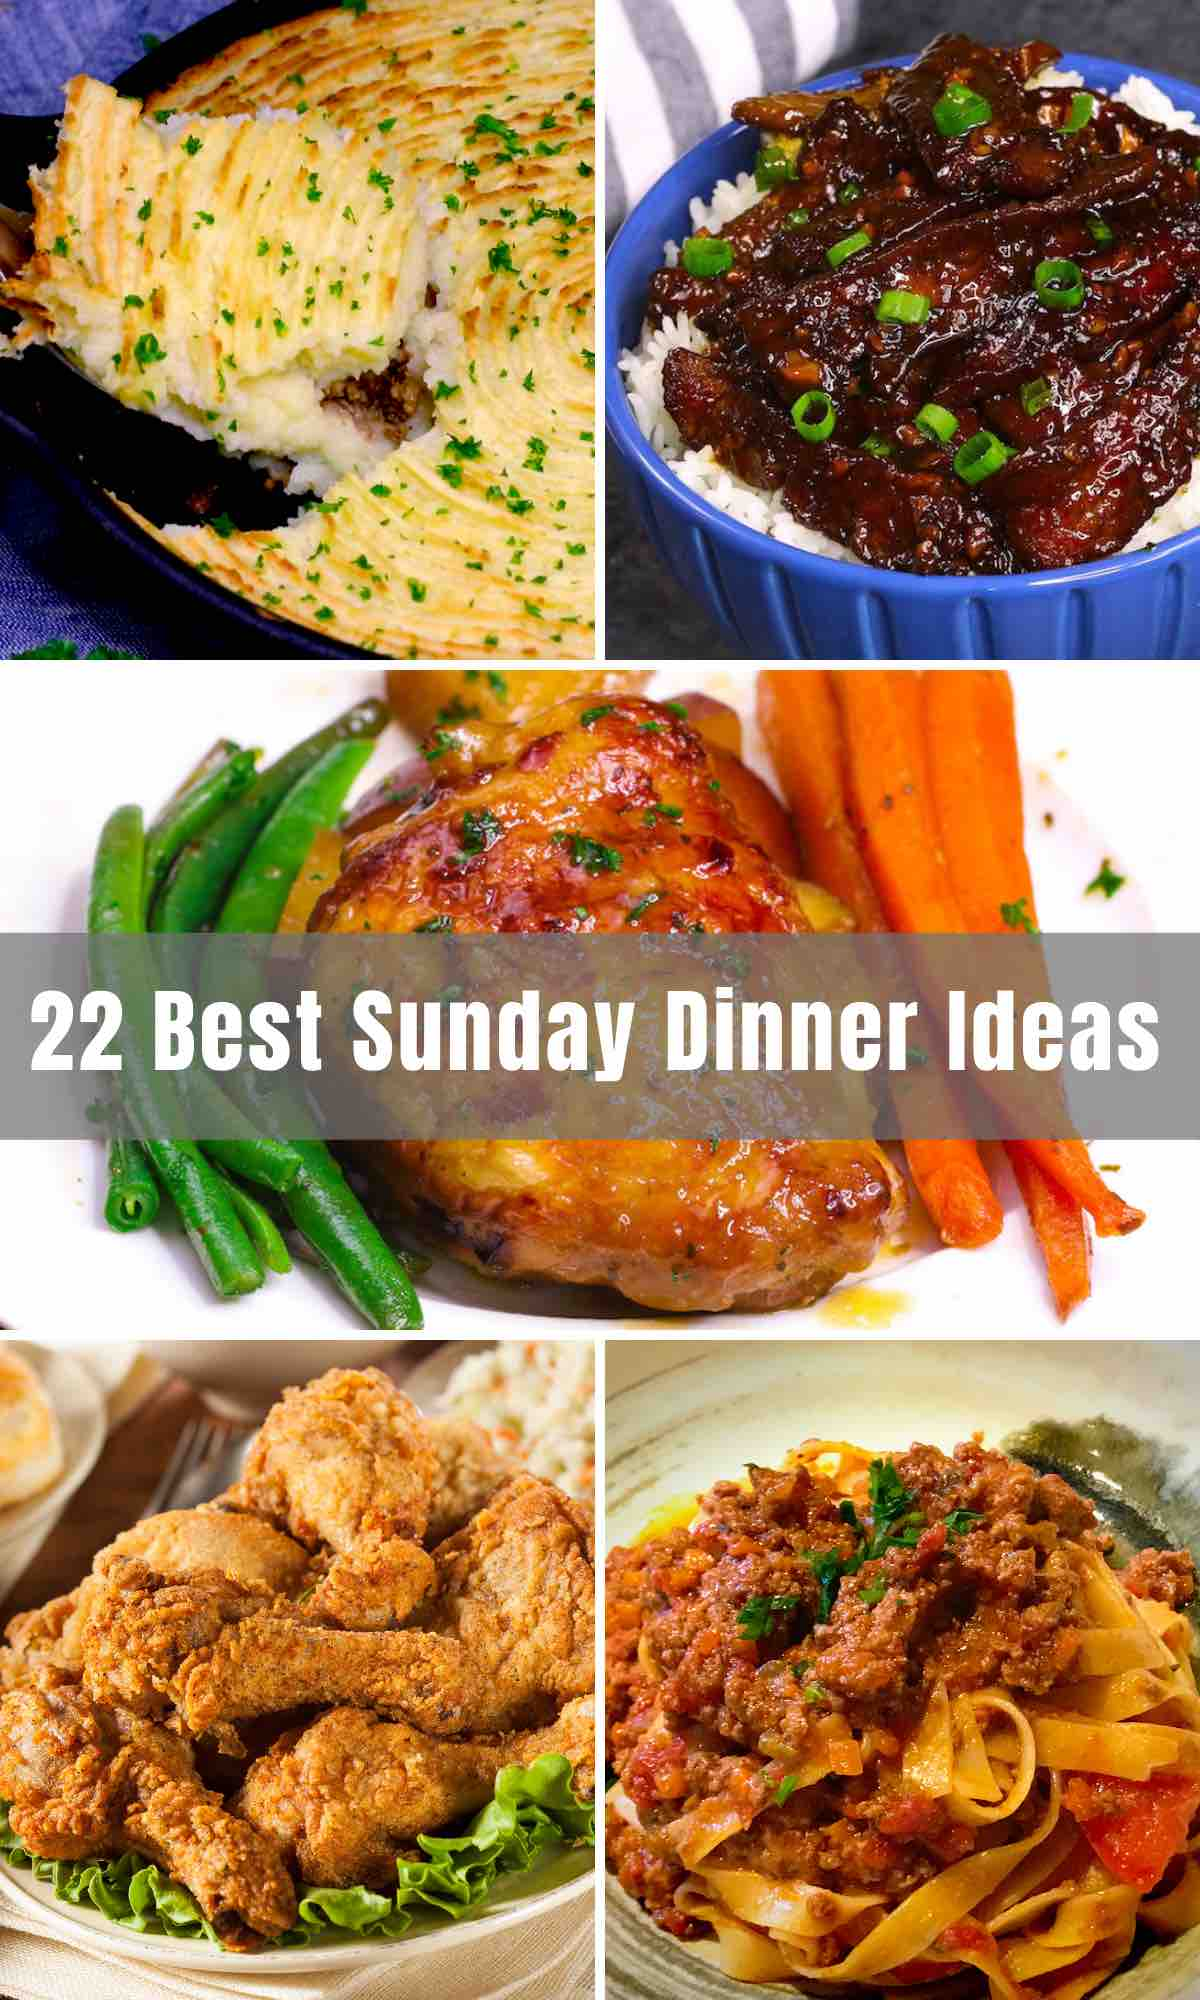 We've rounded up 22 best Sunday Dinner Ideas for the family to gather around the table and have some quality time. Whether you're looking for a lazy dinner recipe, easy supper ideas, Southern Sunday meals, or comforting crowd-pleasers, we've got you covered. Beef, chicken, and fish will all be featured!